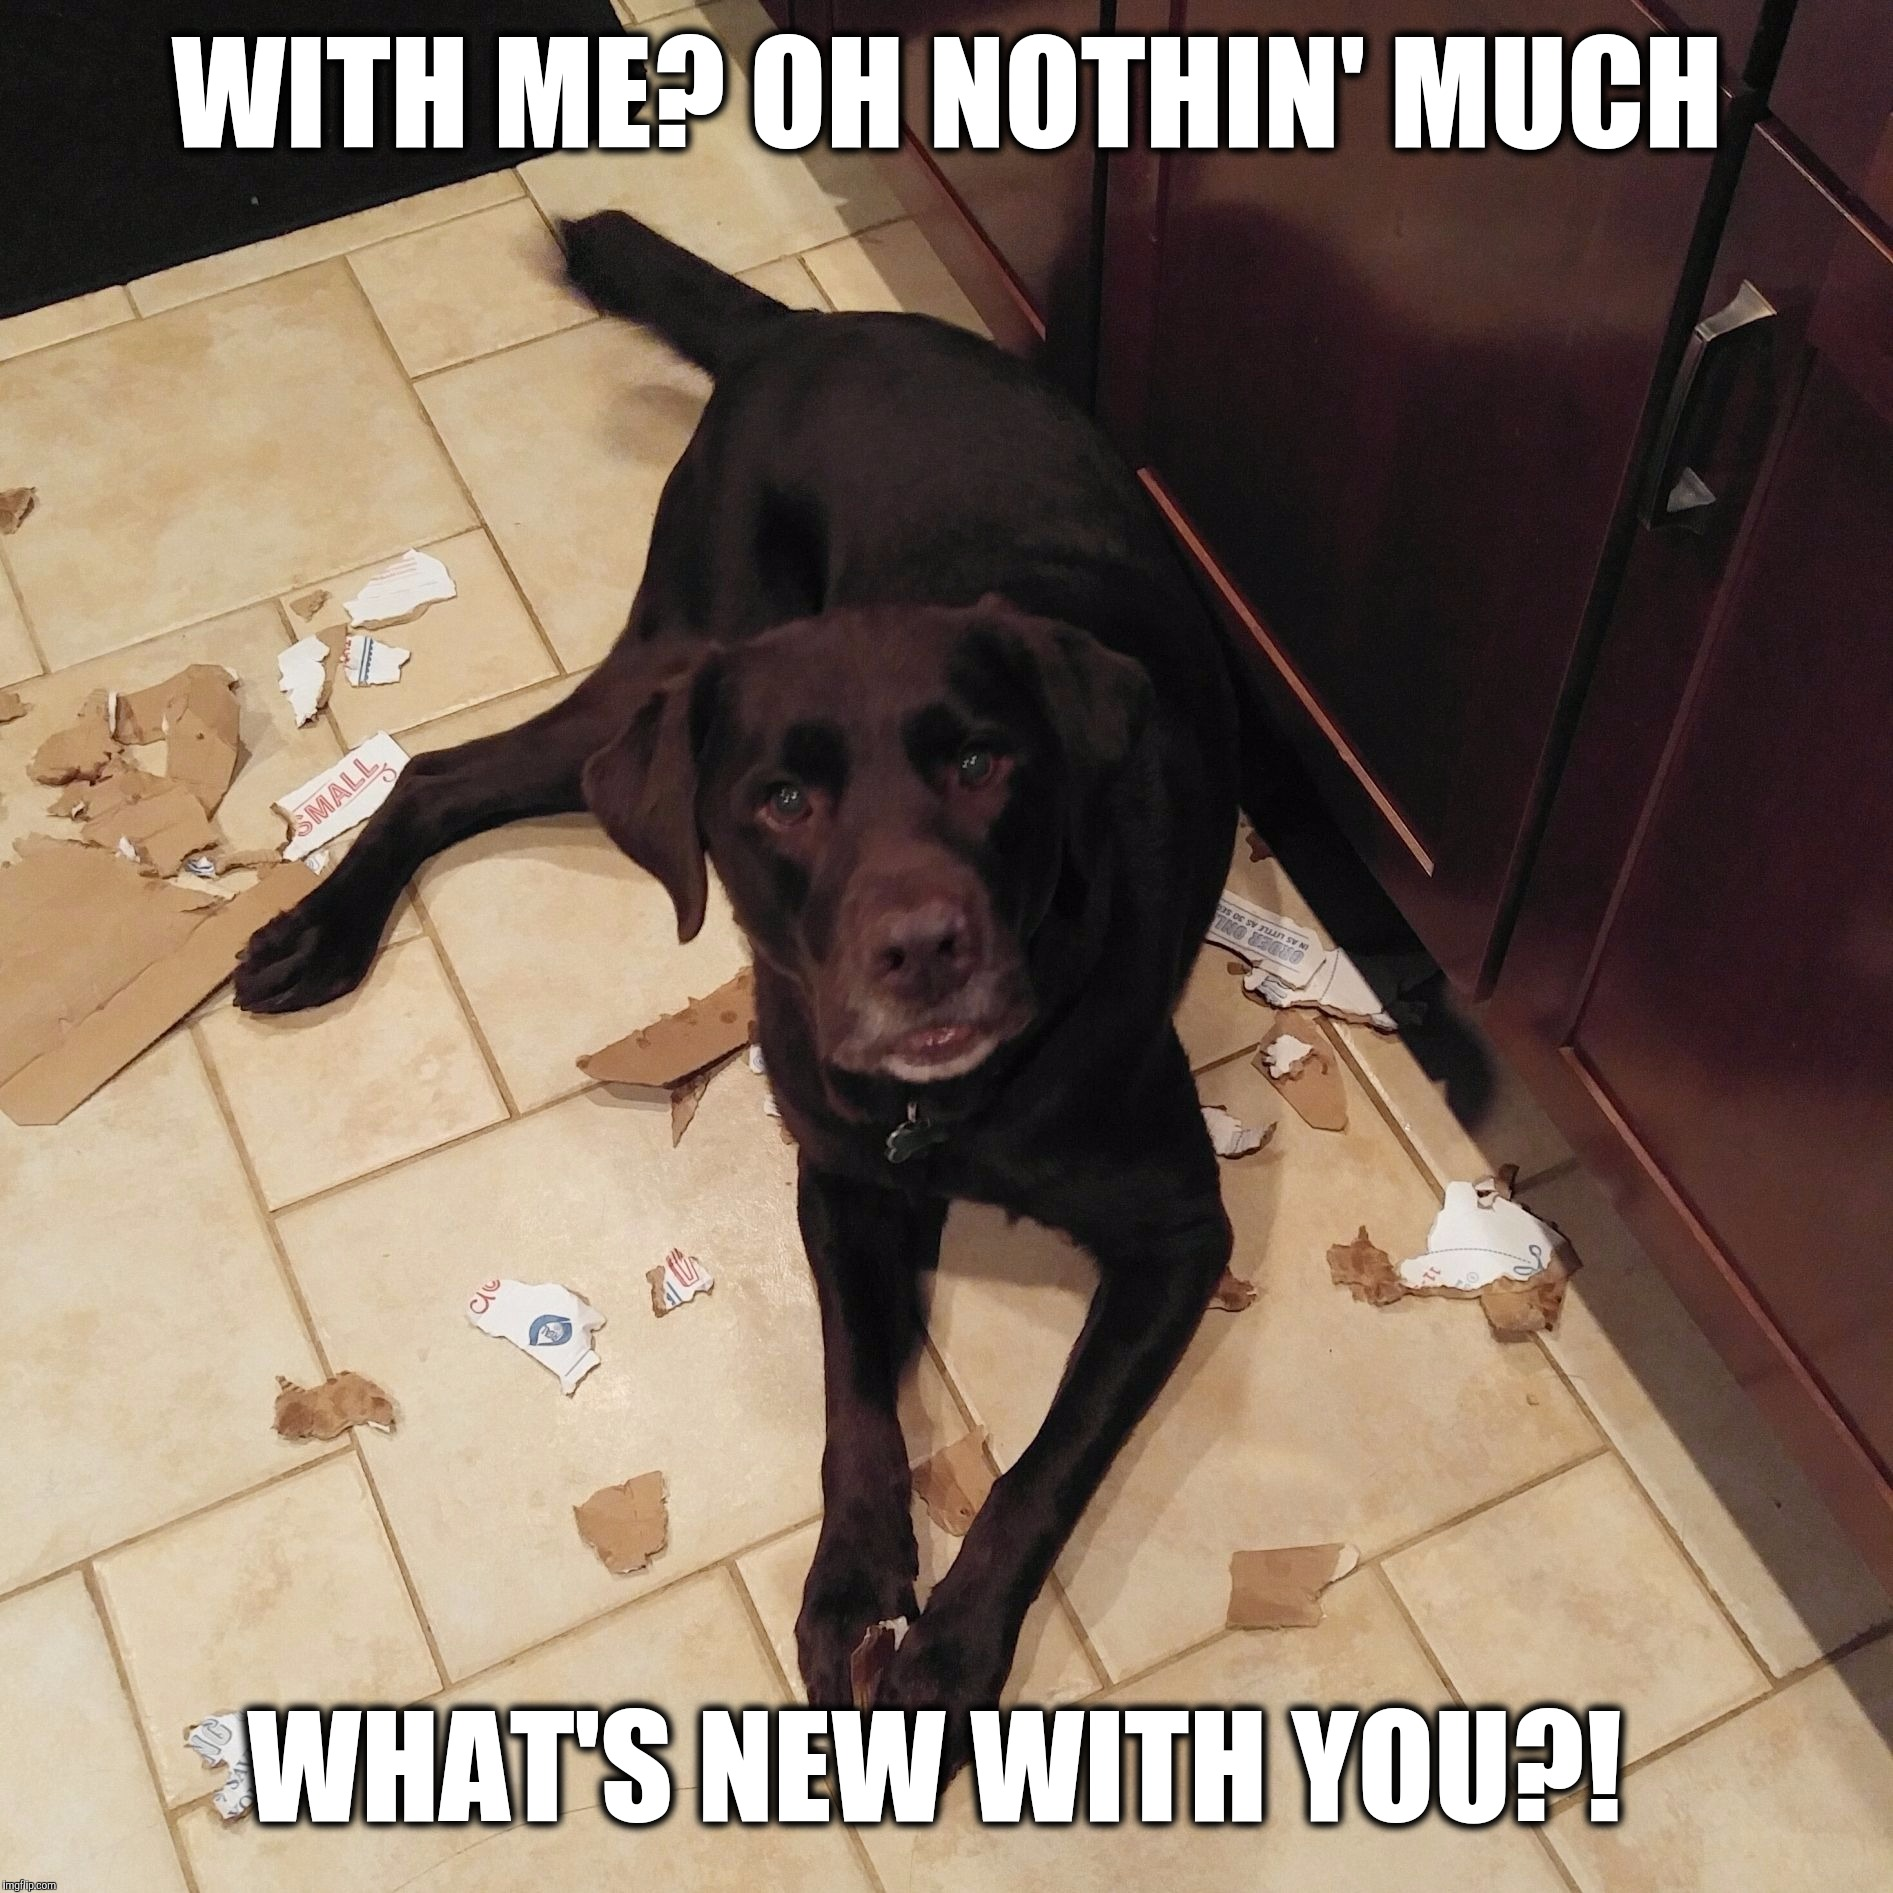 WITH ME? OH NOTHIN' MUCH WHAT'S NEW WITH YOU?! | image tagged in chuckie the chocolate lab,trouble,funny dog memes,dog,cute,labrador | made w/ Imgflip meme maker